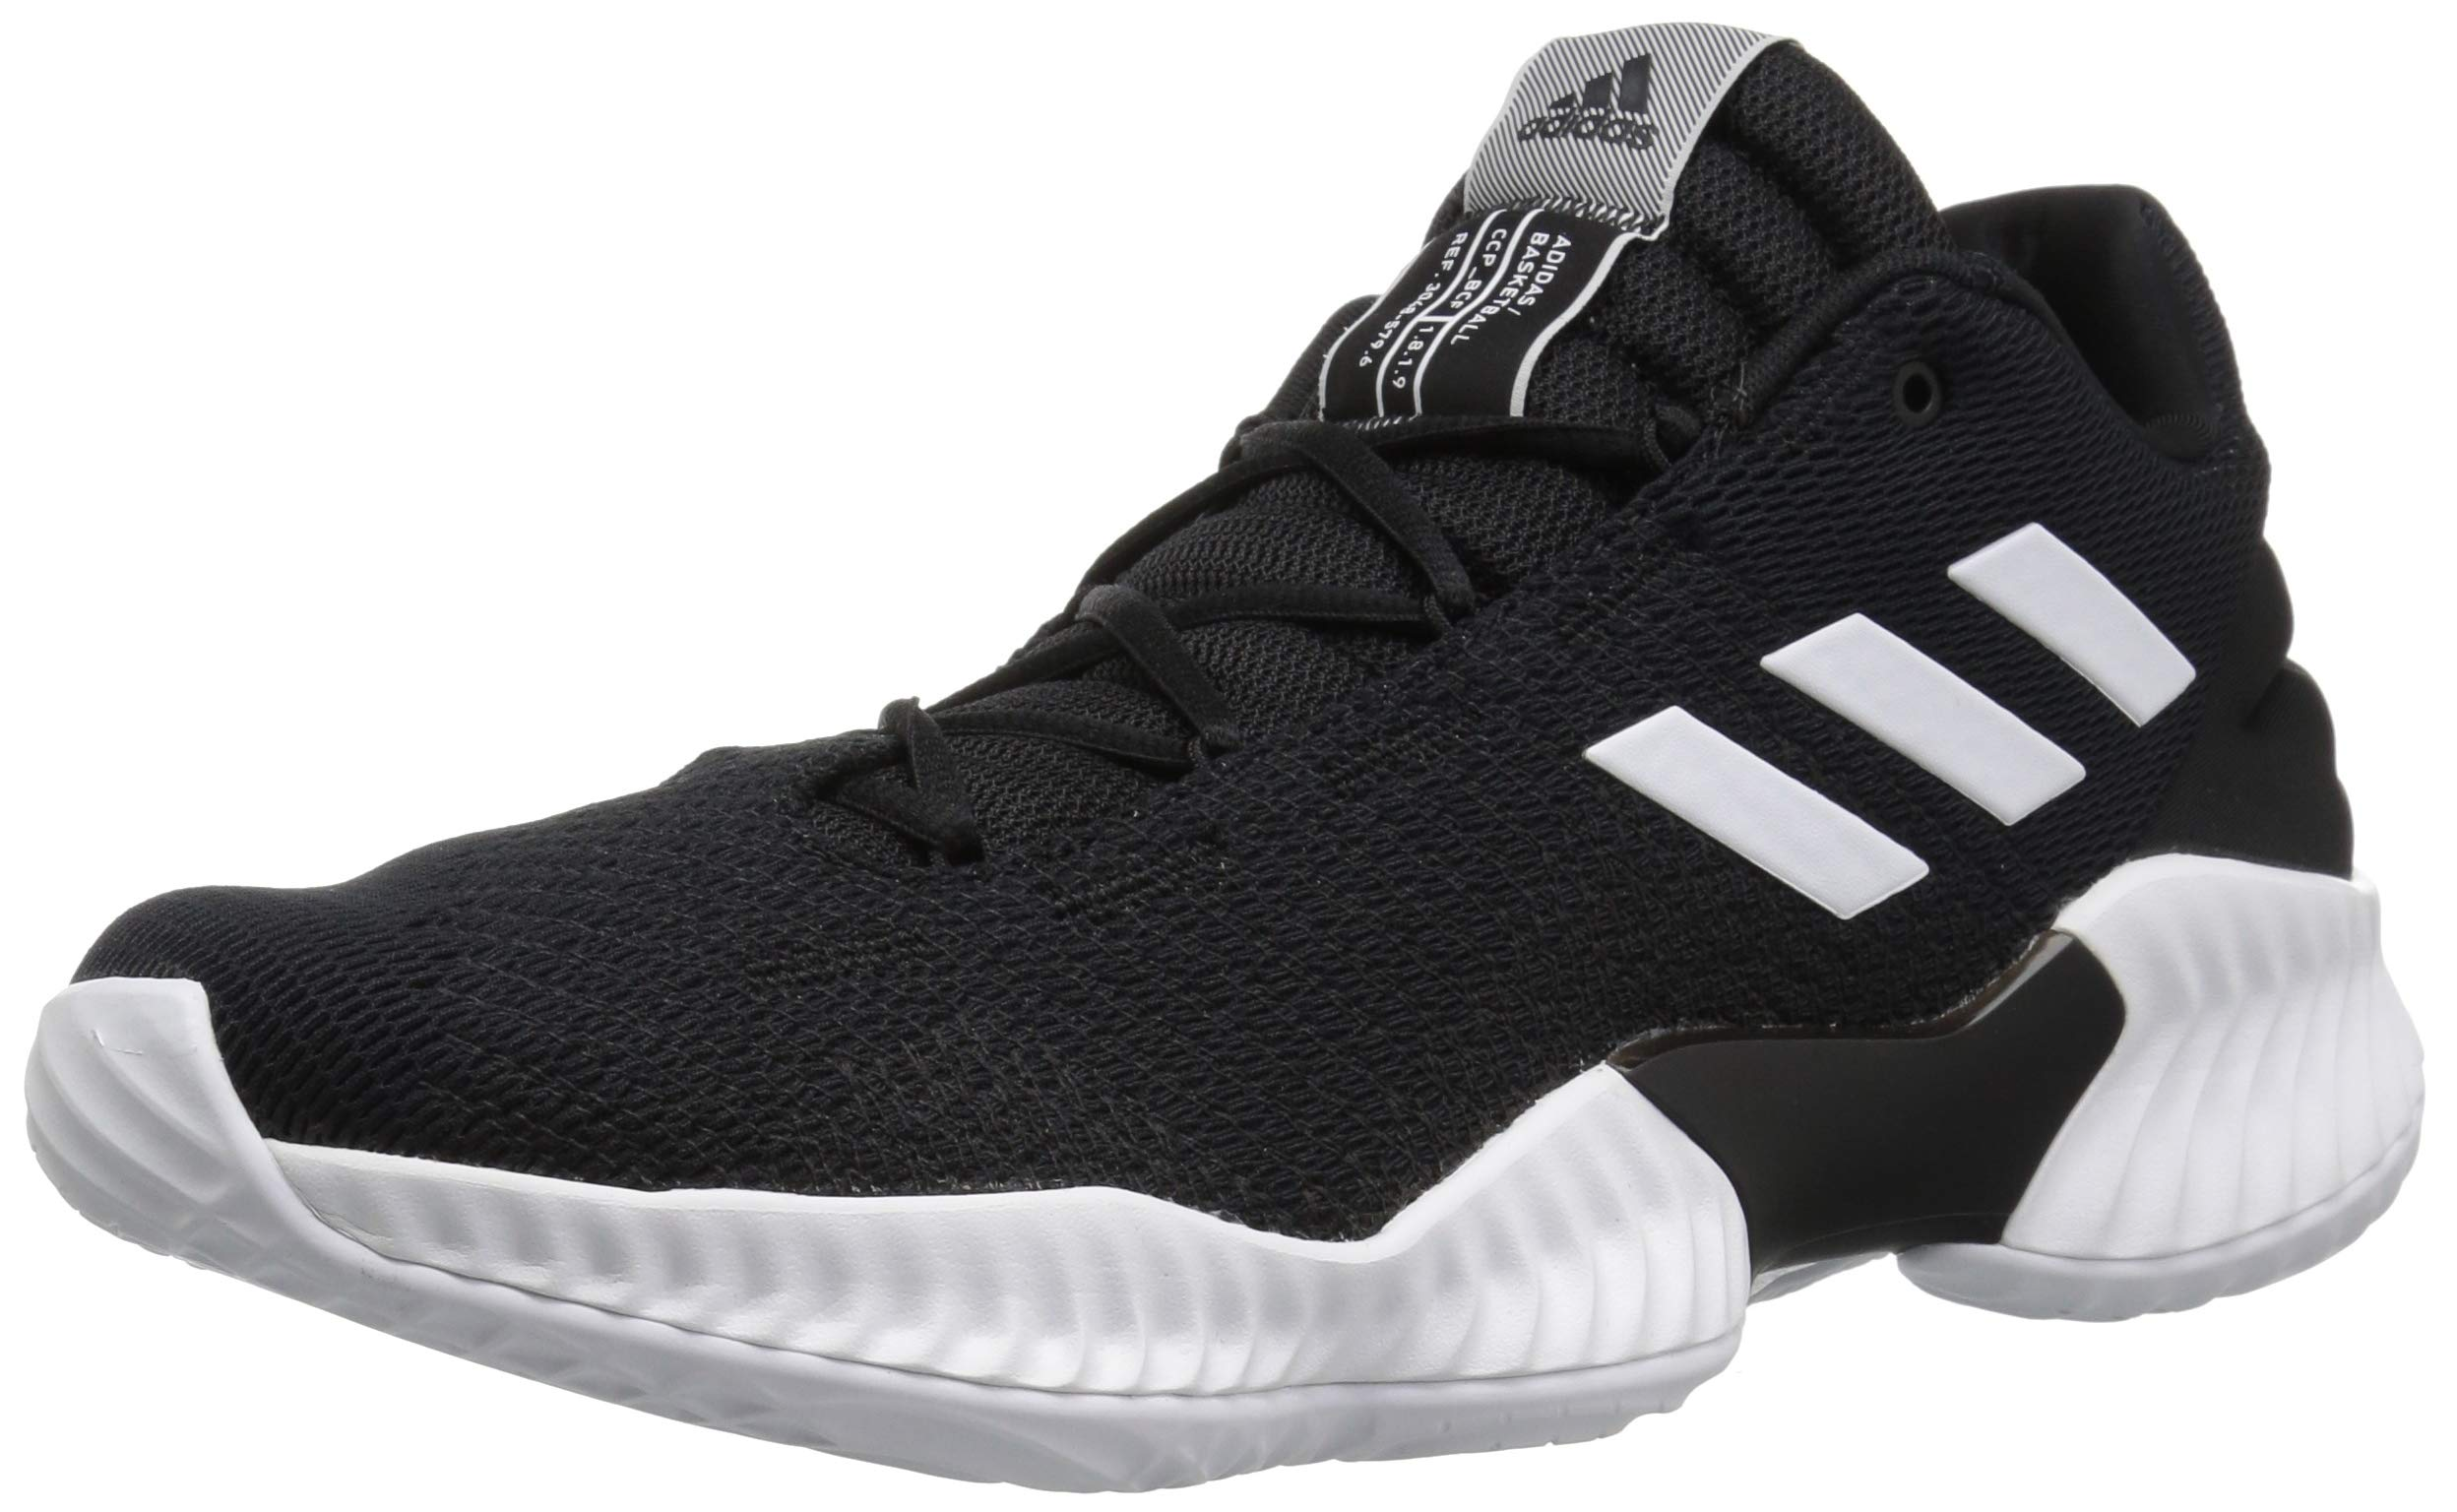 Best Adidas Basketball Shoe Reviews ( 2021 ): Our Favorite Pairs ...